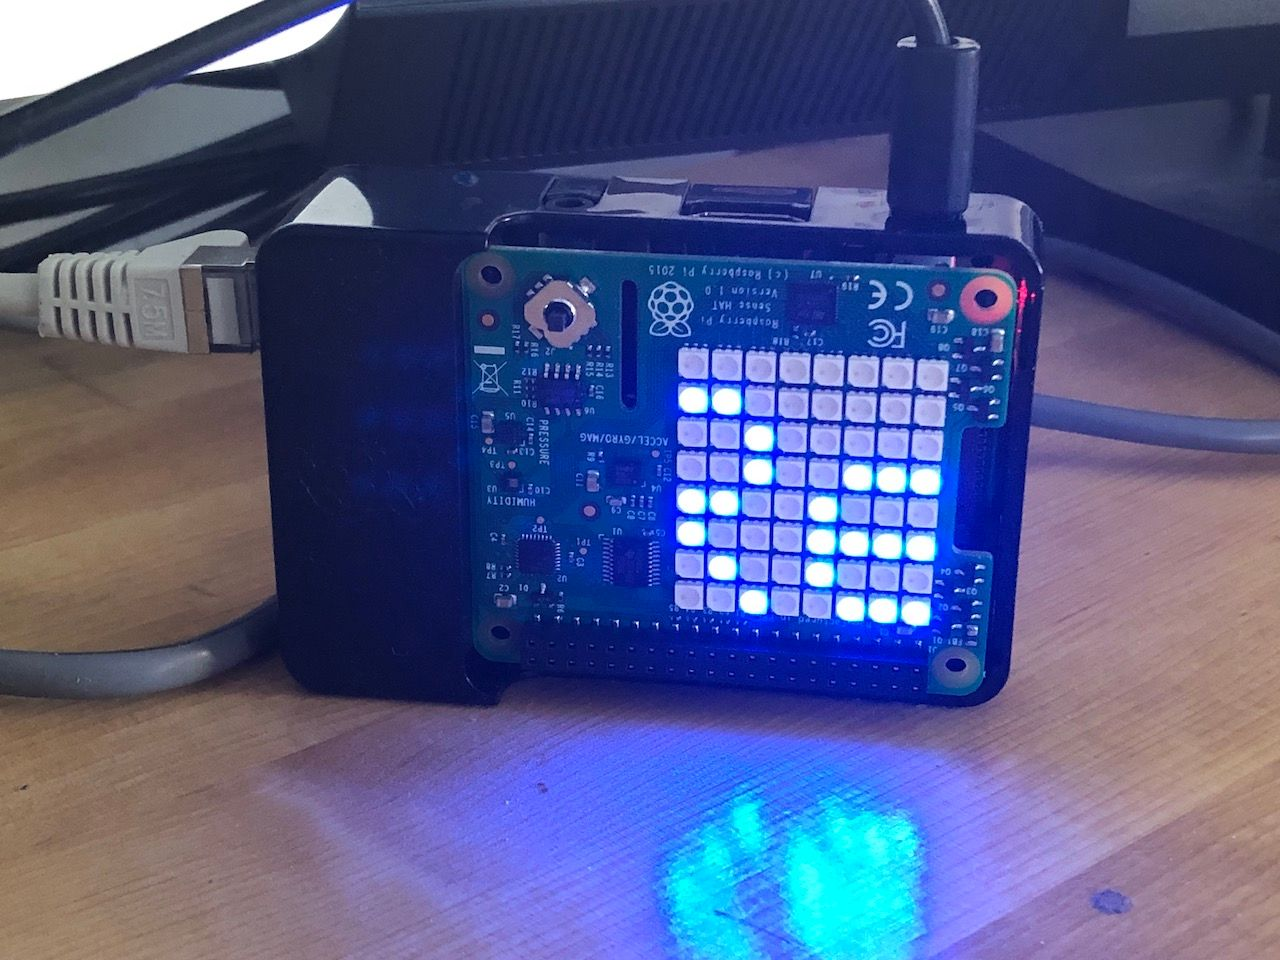 raspberry with scrolling text on a sense hat matrix display